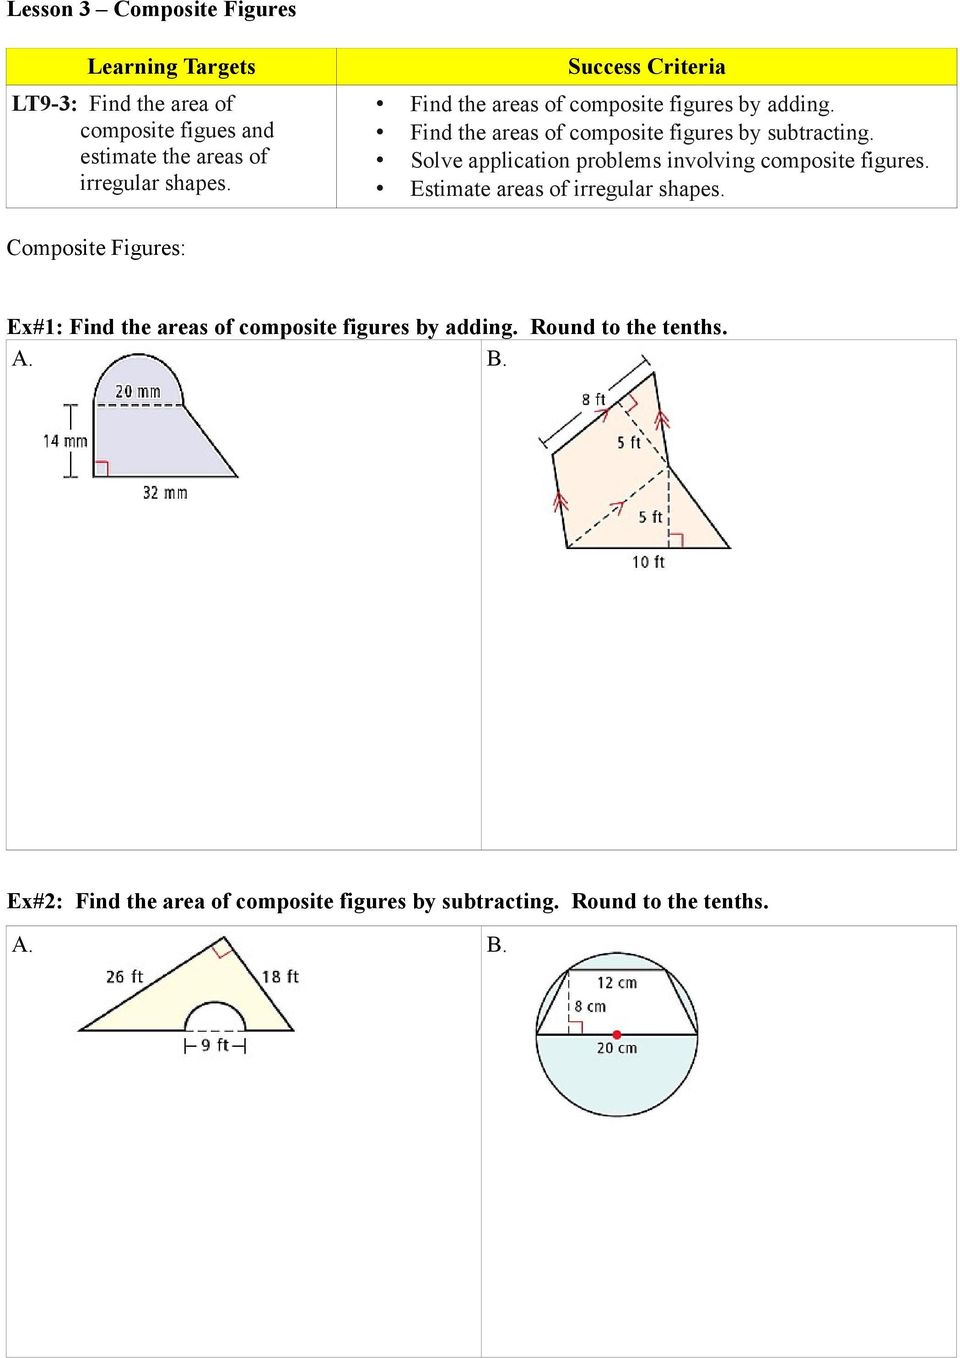 Solve application problems involving composite figures. Estimate areas of irregular shapes.